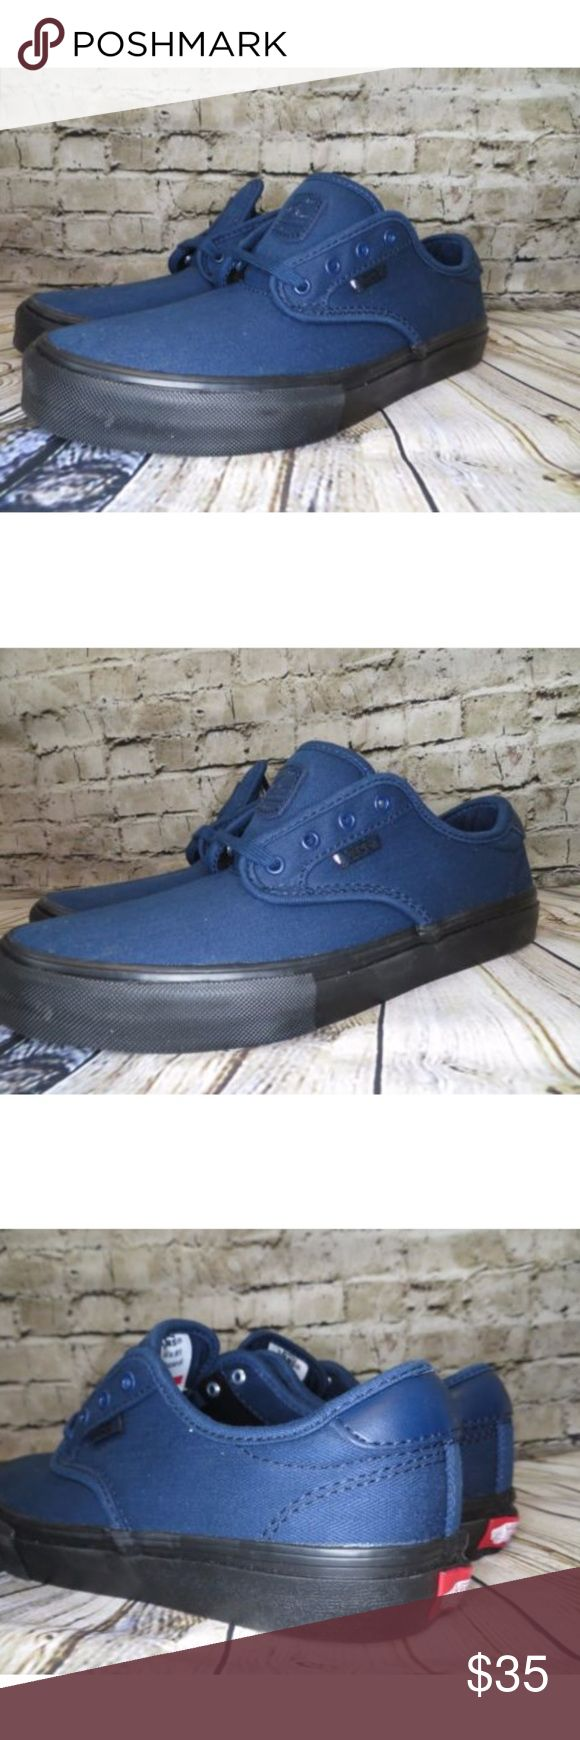 Vans Chima Ferguson Pro Navy Blue Women's 7.5 Hi!  This is an awesome pair of skate shoes in the Chima Ferguson pro style. They are a youth size 5.5. This equates to a women's size 7.5. These are brand new in the box. Vans Shoes Athletic Shoes